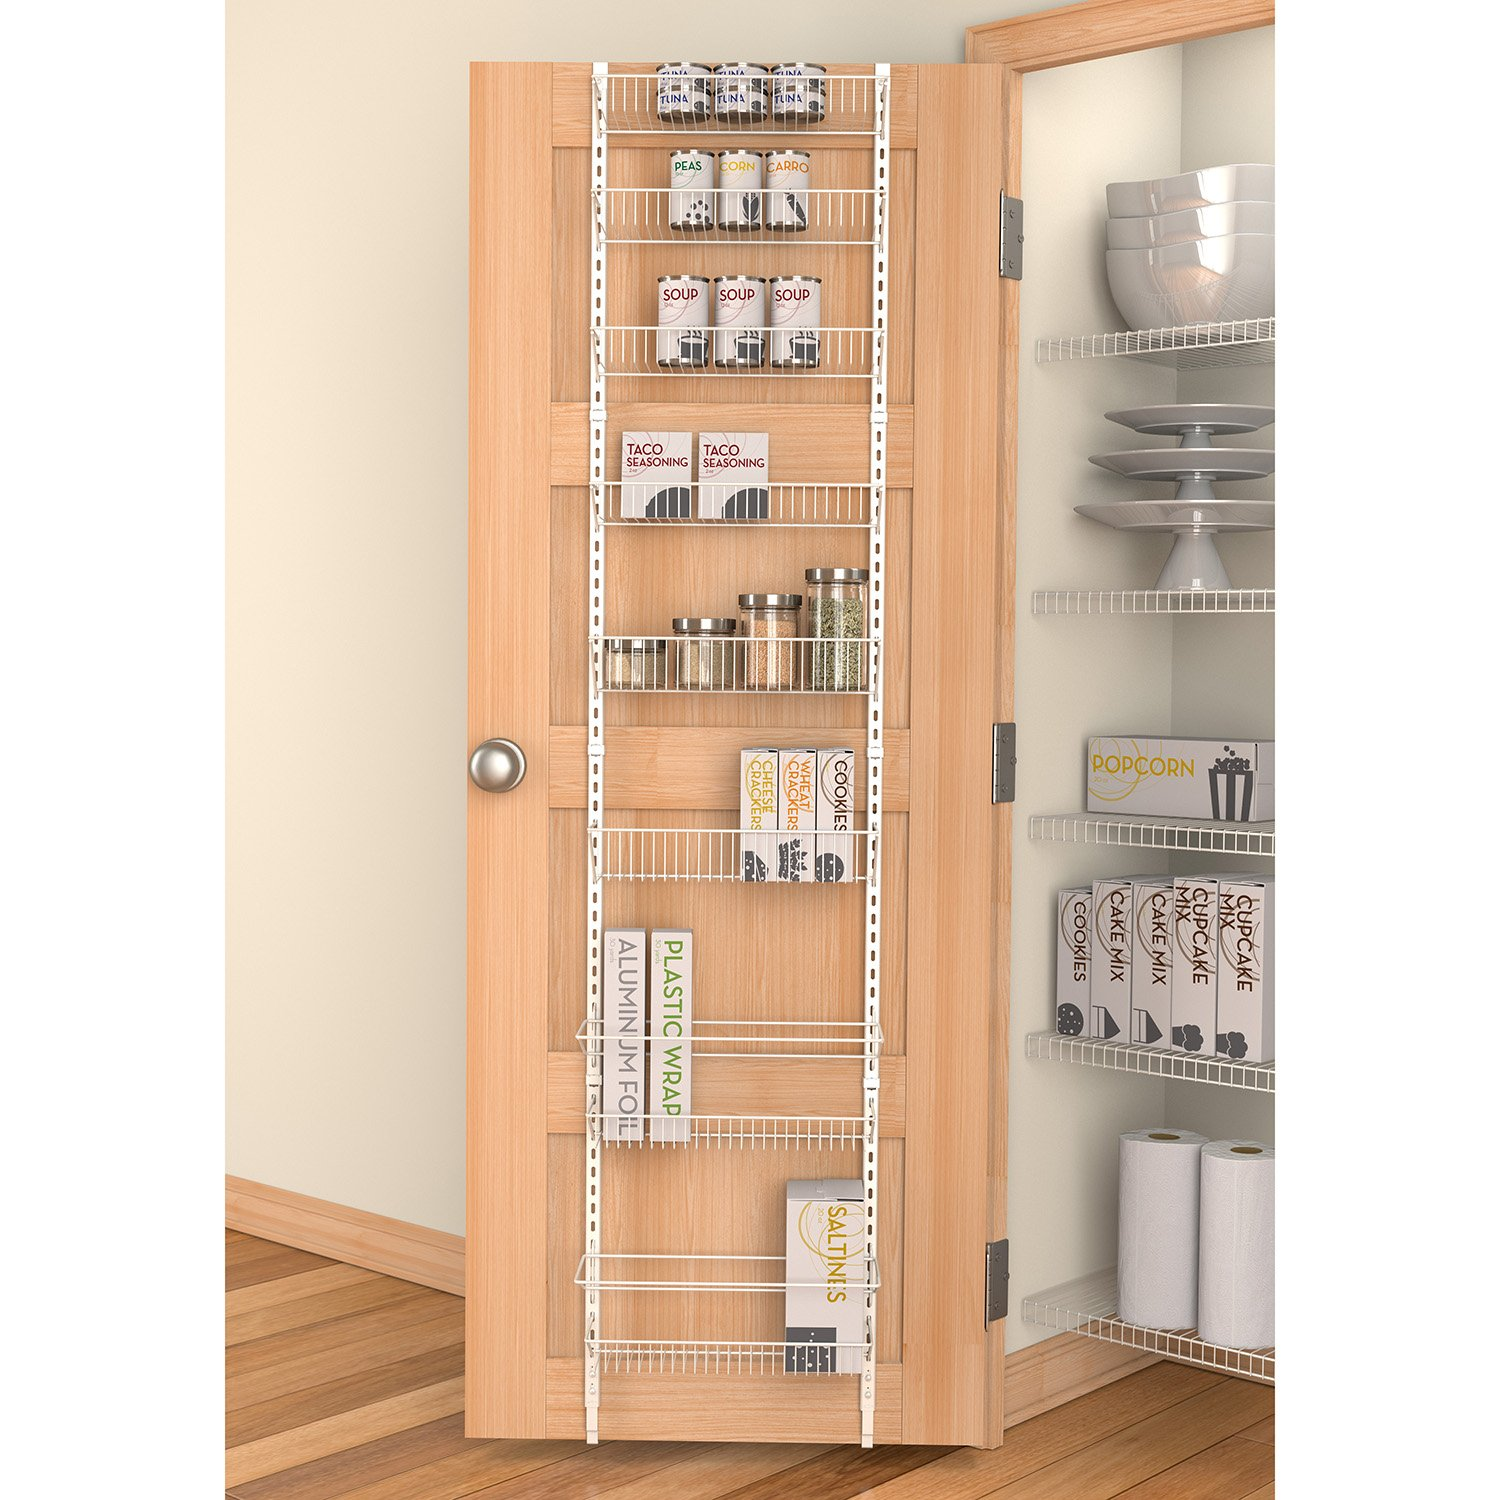 Bathroom cabinet door organizer - Panacea Grayline Back Of The Door Organizer White